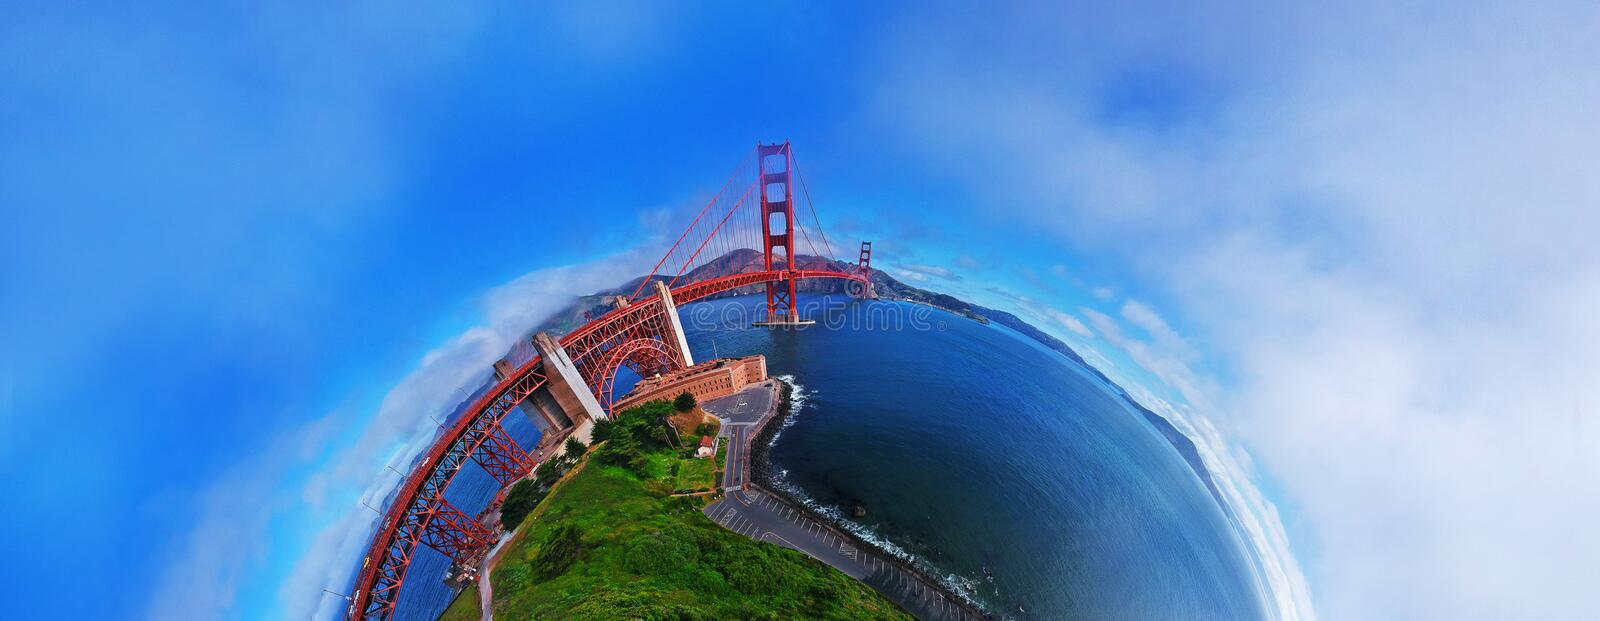 Vista aérea de golden gate bridge em San Francisco, Califórnia TIRO DO ZANGÃO, PANORAMA DO PLANETA 180 GRAUS fotografia de stock royalty free